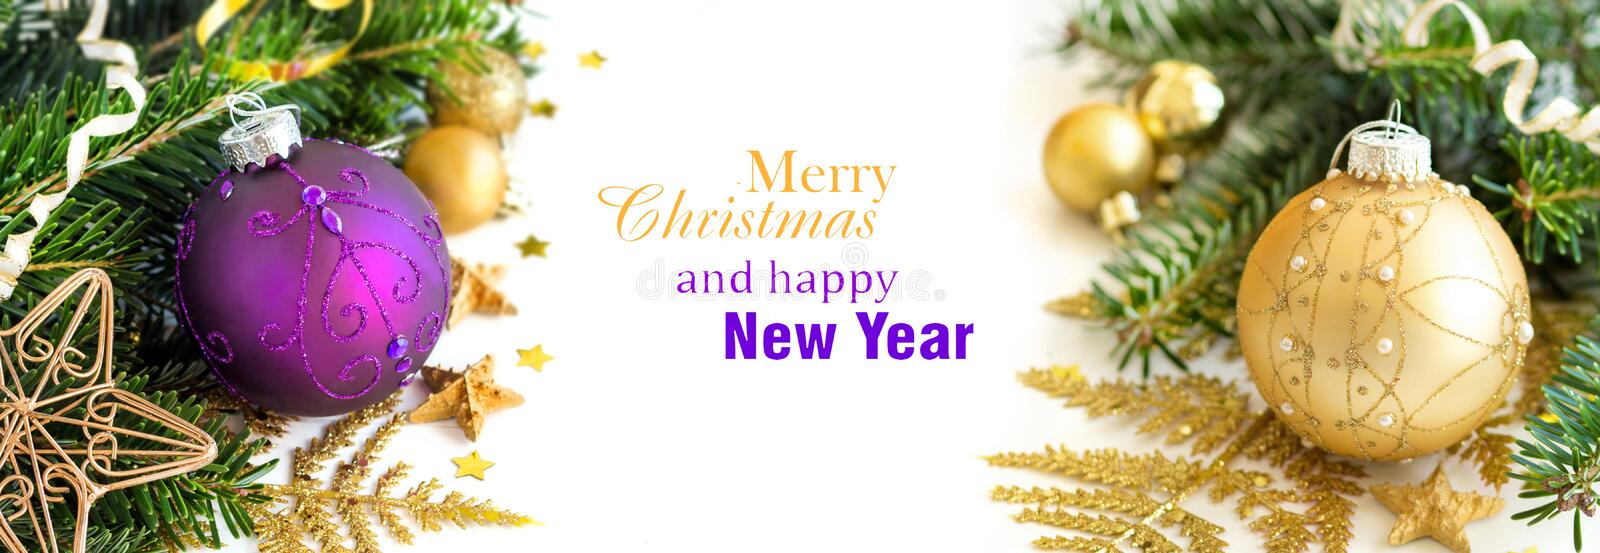 Purple and golden Christmas ornaments border. On white background royalty free stock photos